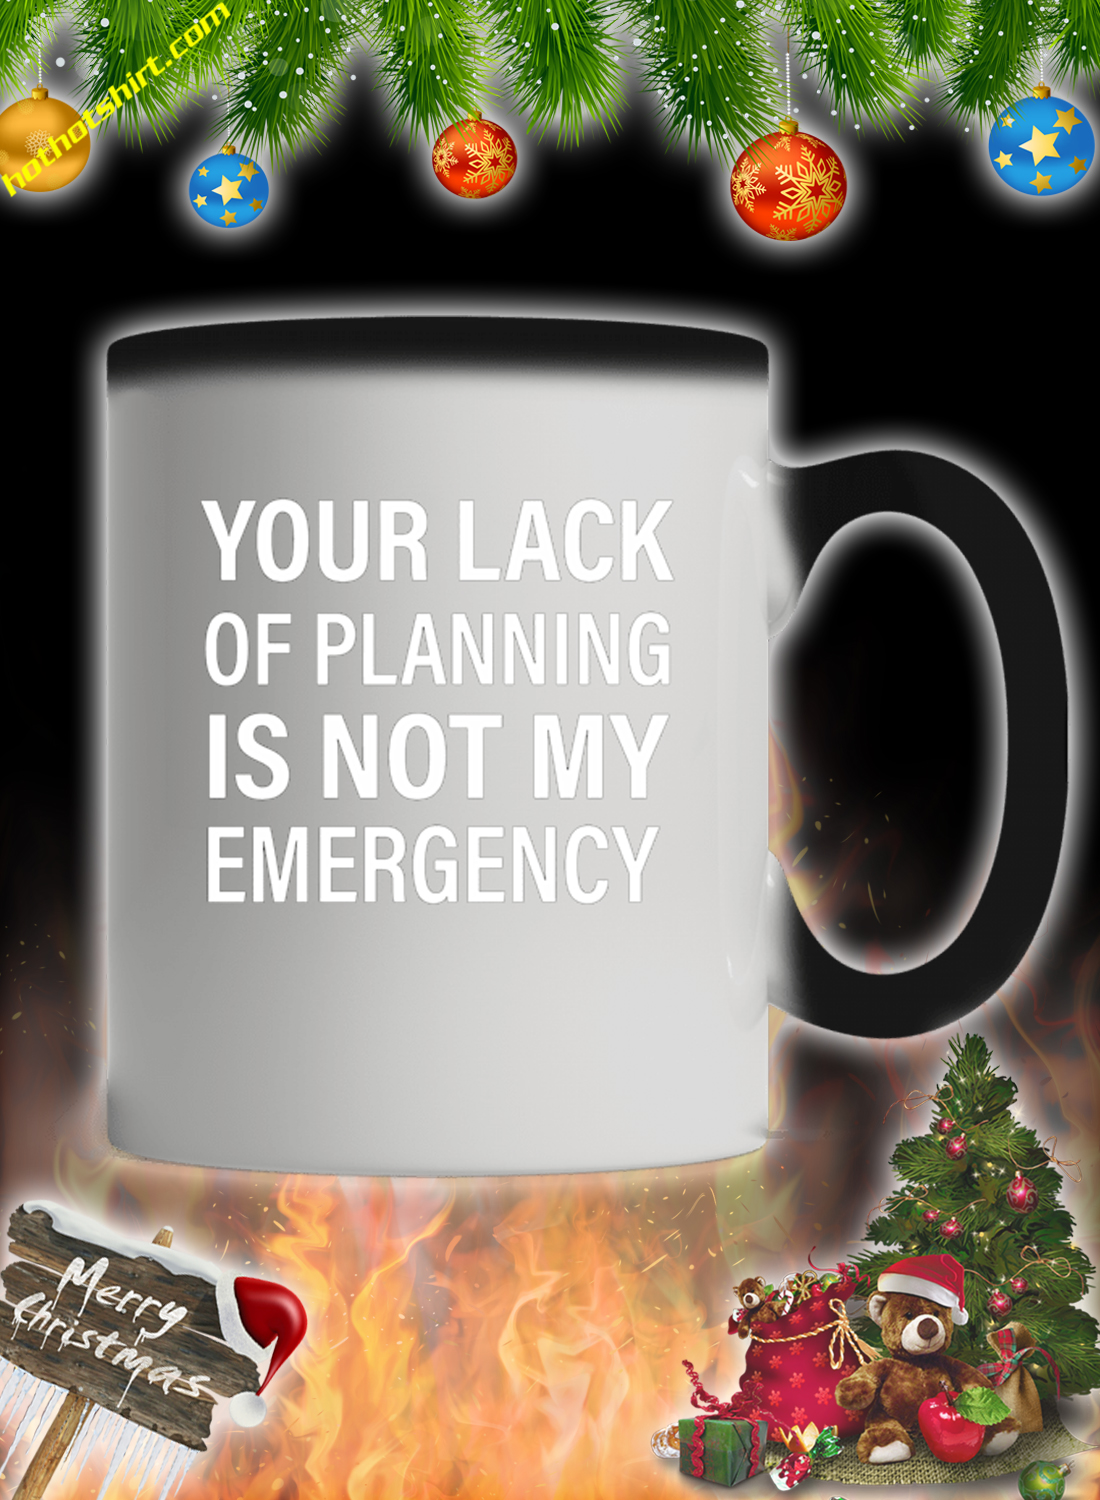 Your lack of planning is not my emergency mug 2